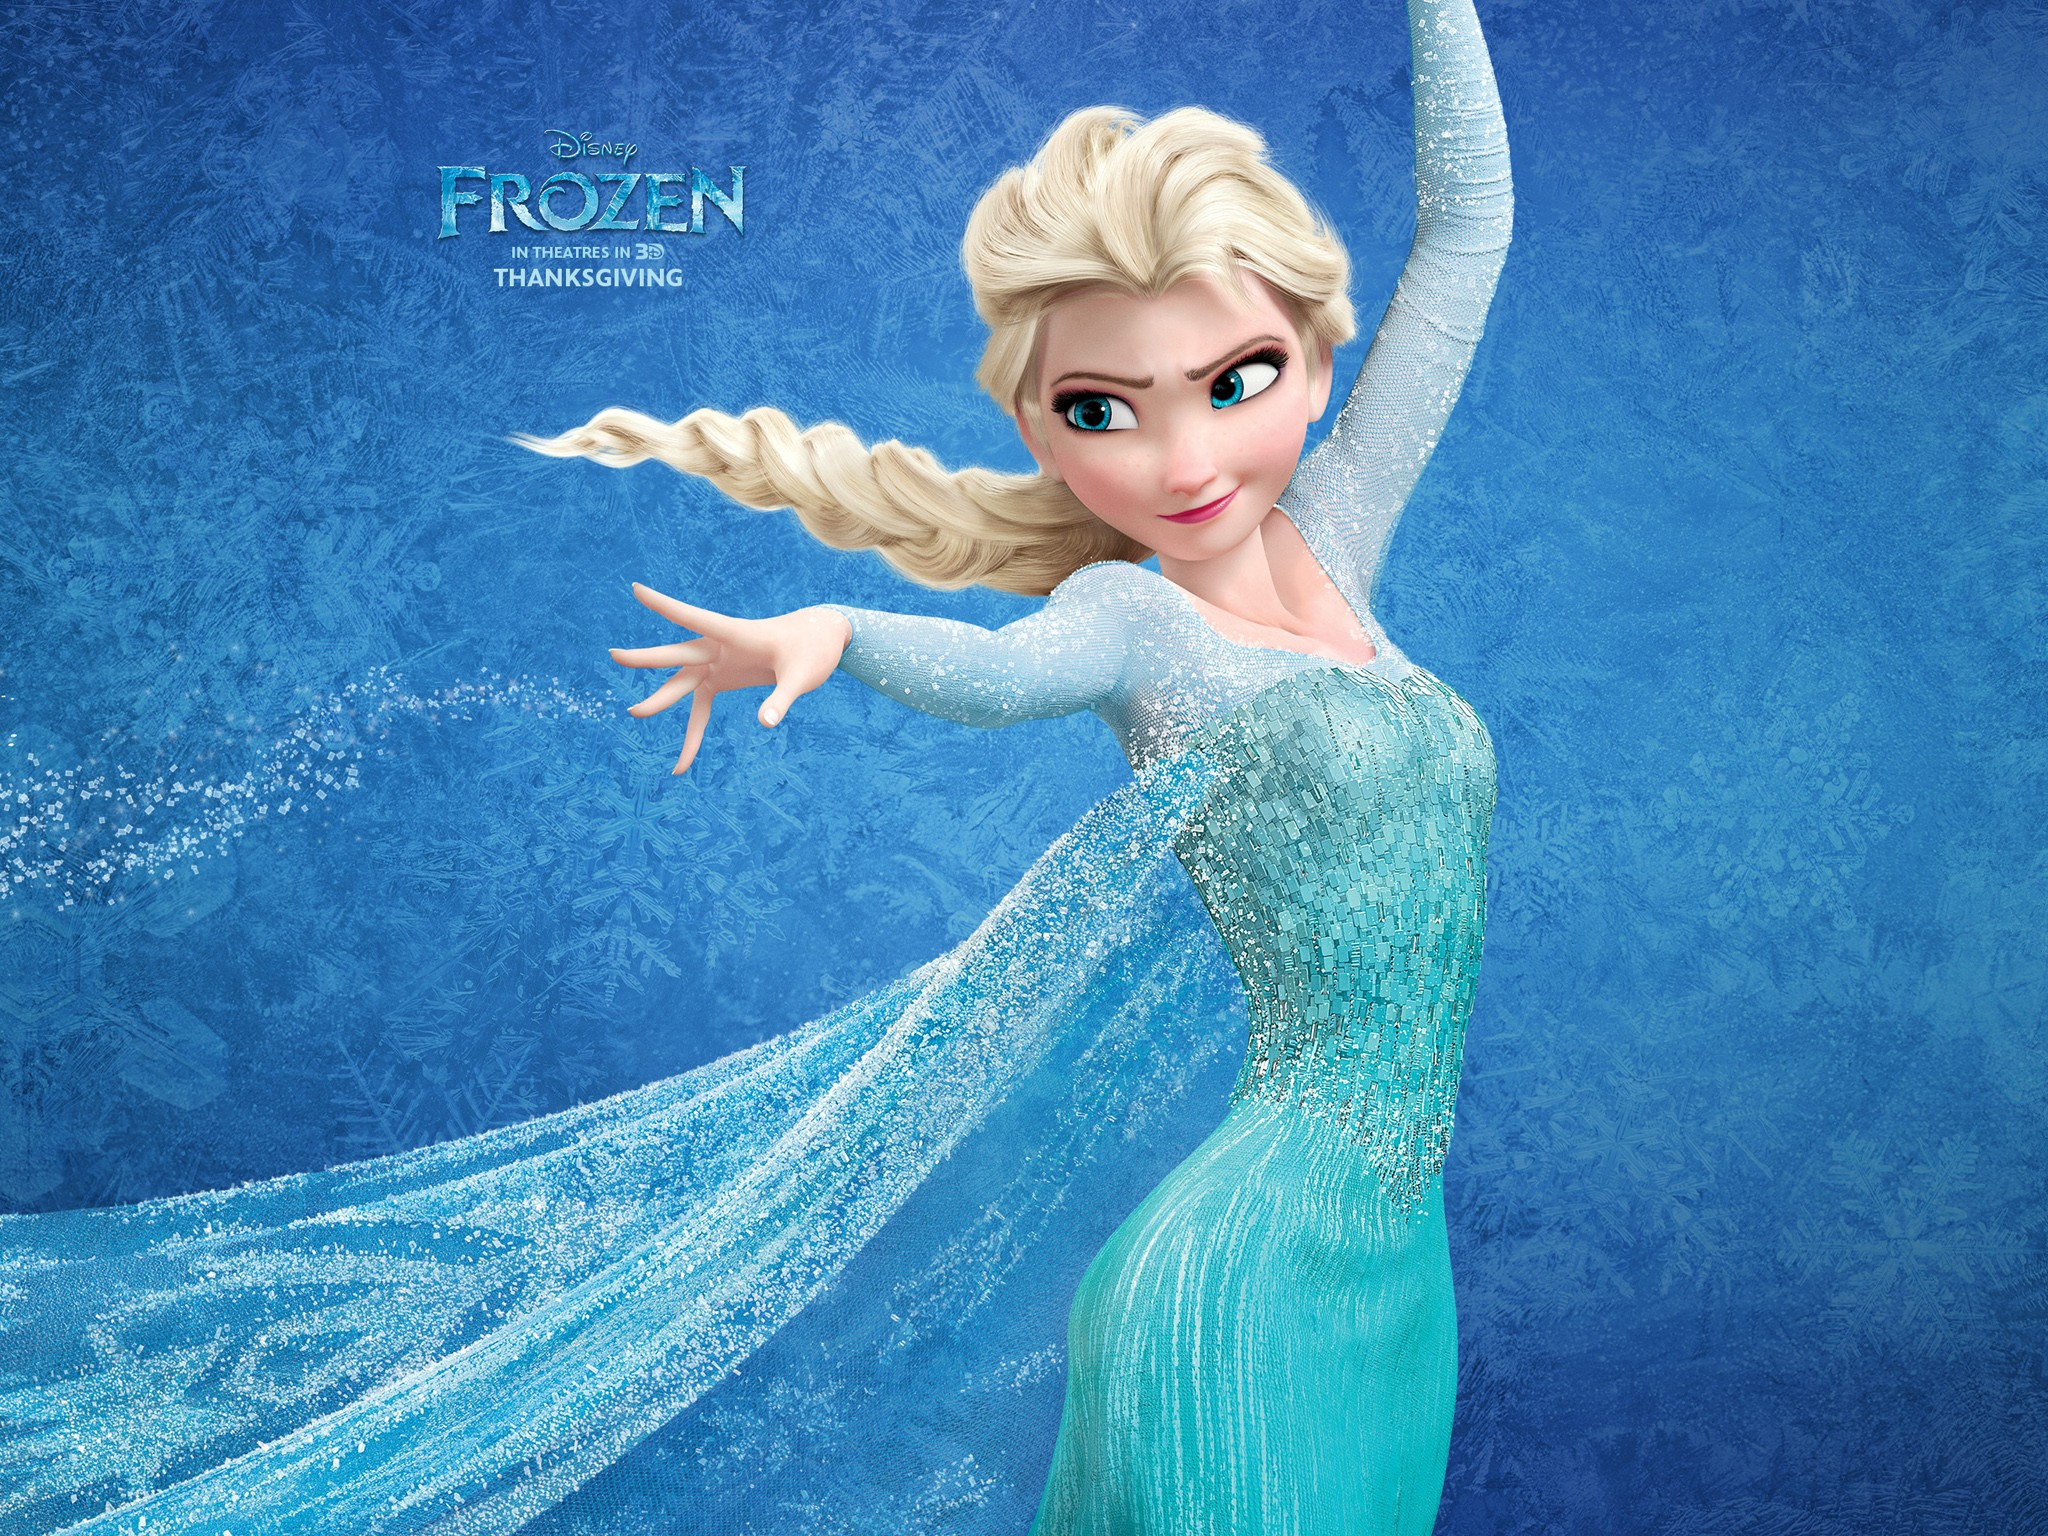 Elsa Live Wallpapers By Frozen Gallery